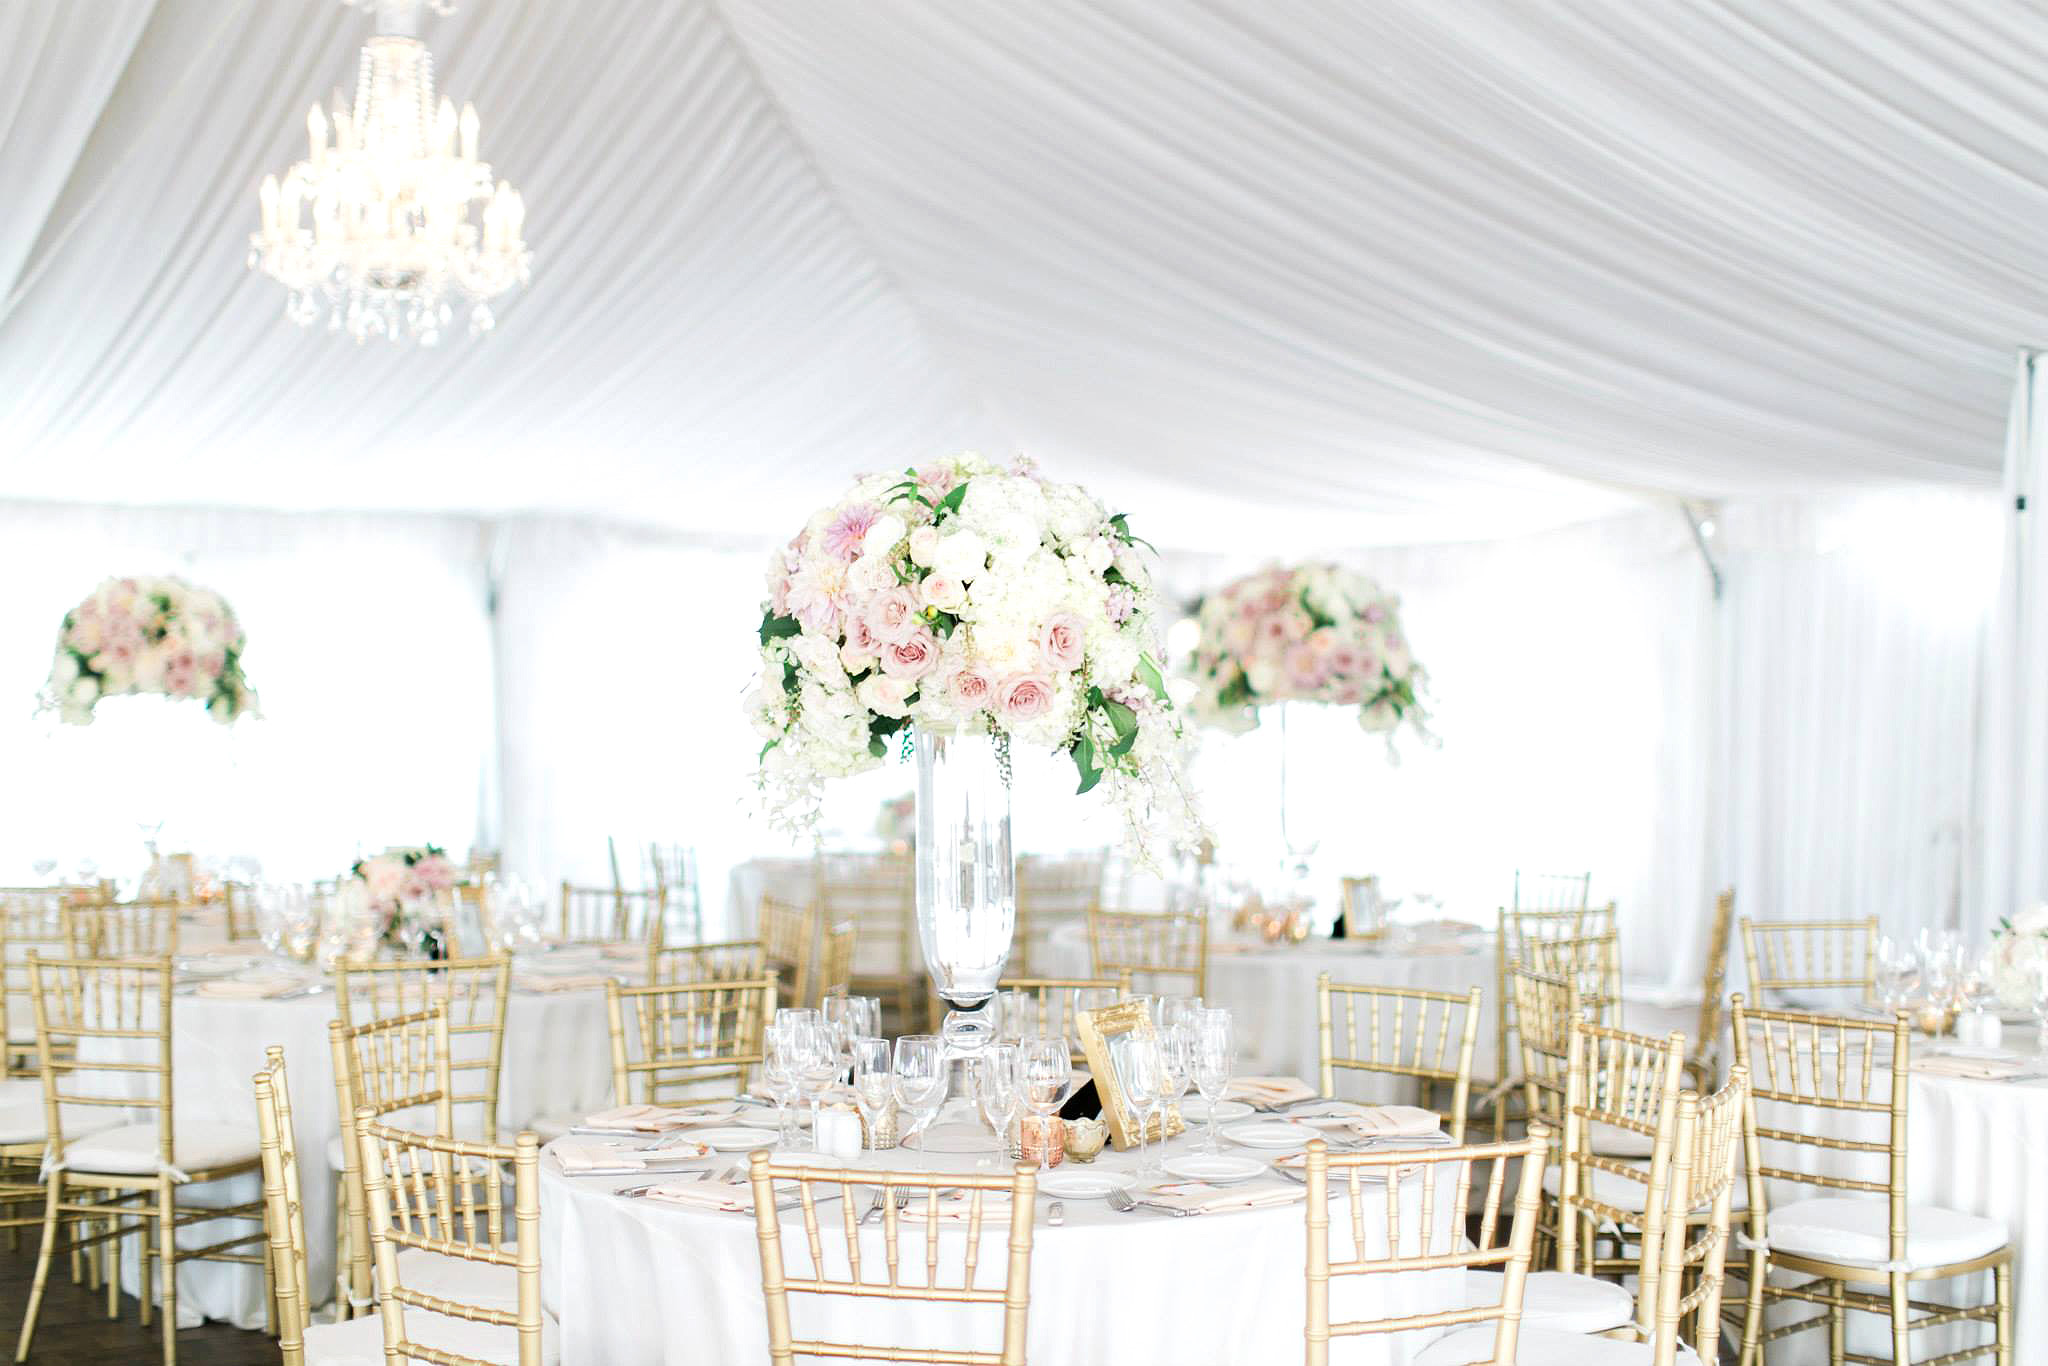 beautiful garden wedding reception tent, white tables with gold chairs and floral centerpieces